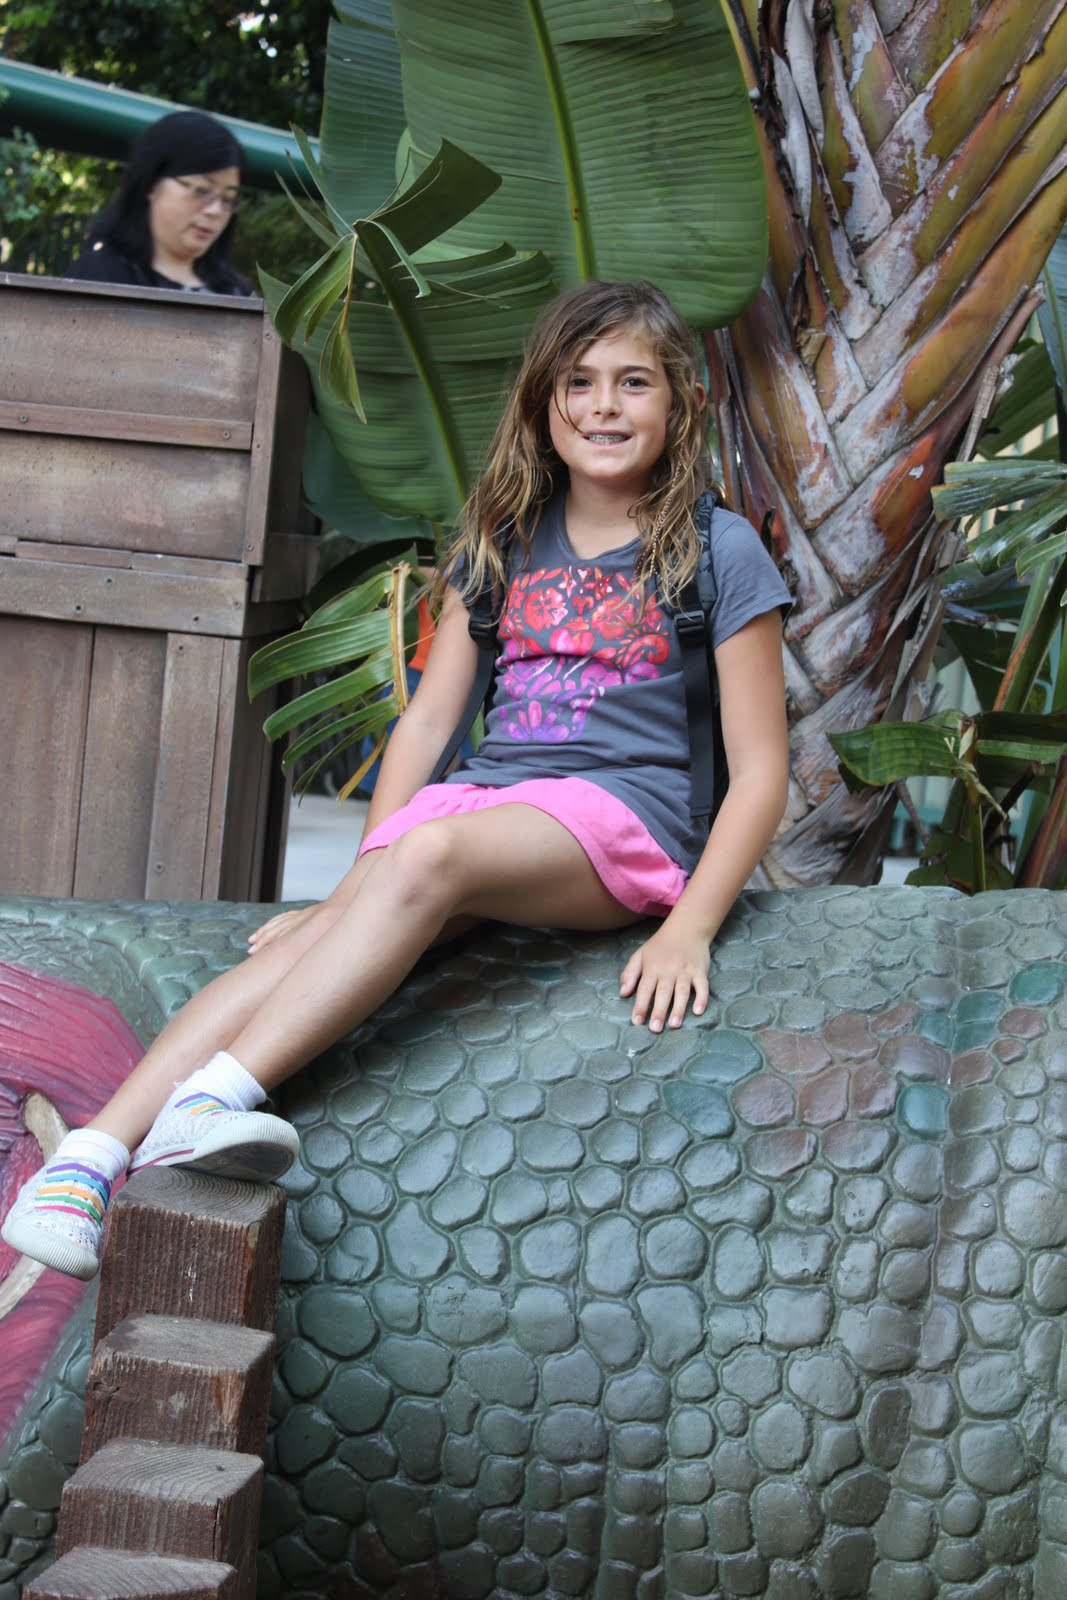 HUNTINGTON BEACH GIRL SCOUT TROOP 746: THE DISCOVERY CENTER